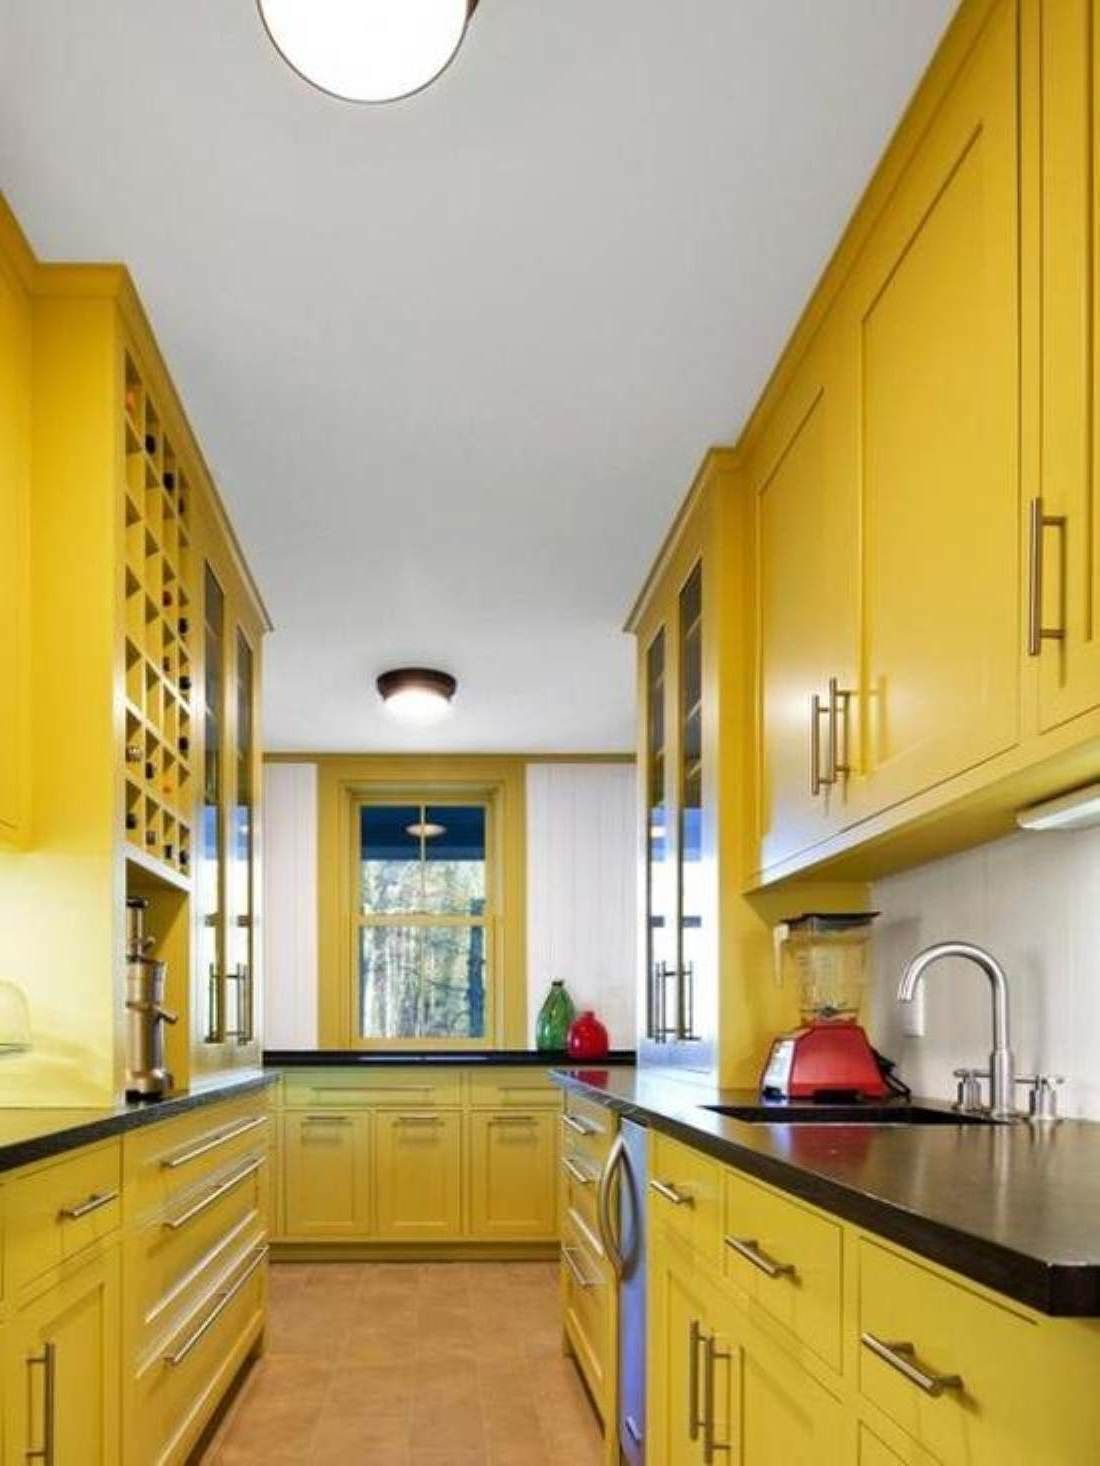 Kitchen 9 Fascinating Painted Kitchen Cabinets With Yellow ...